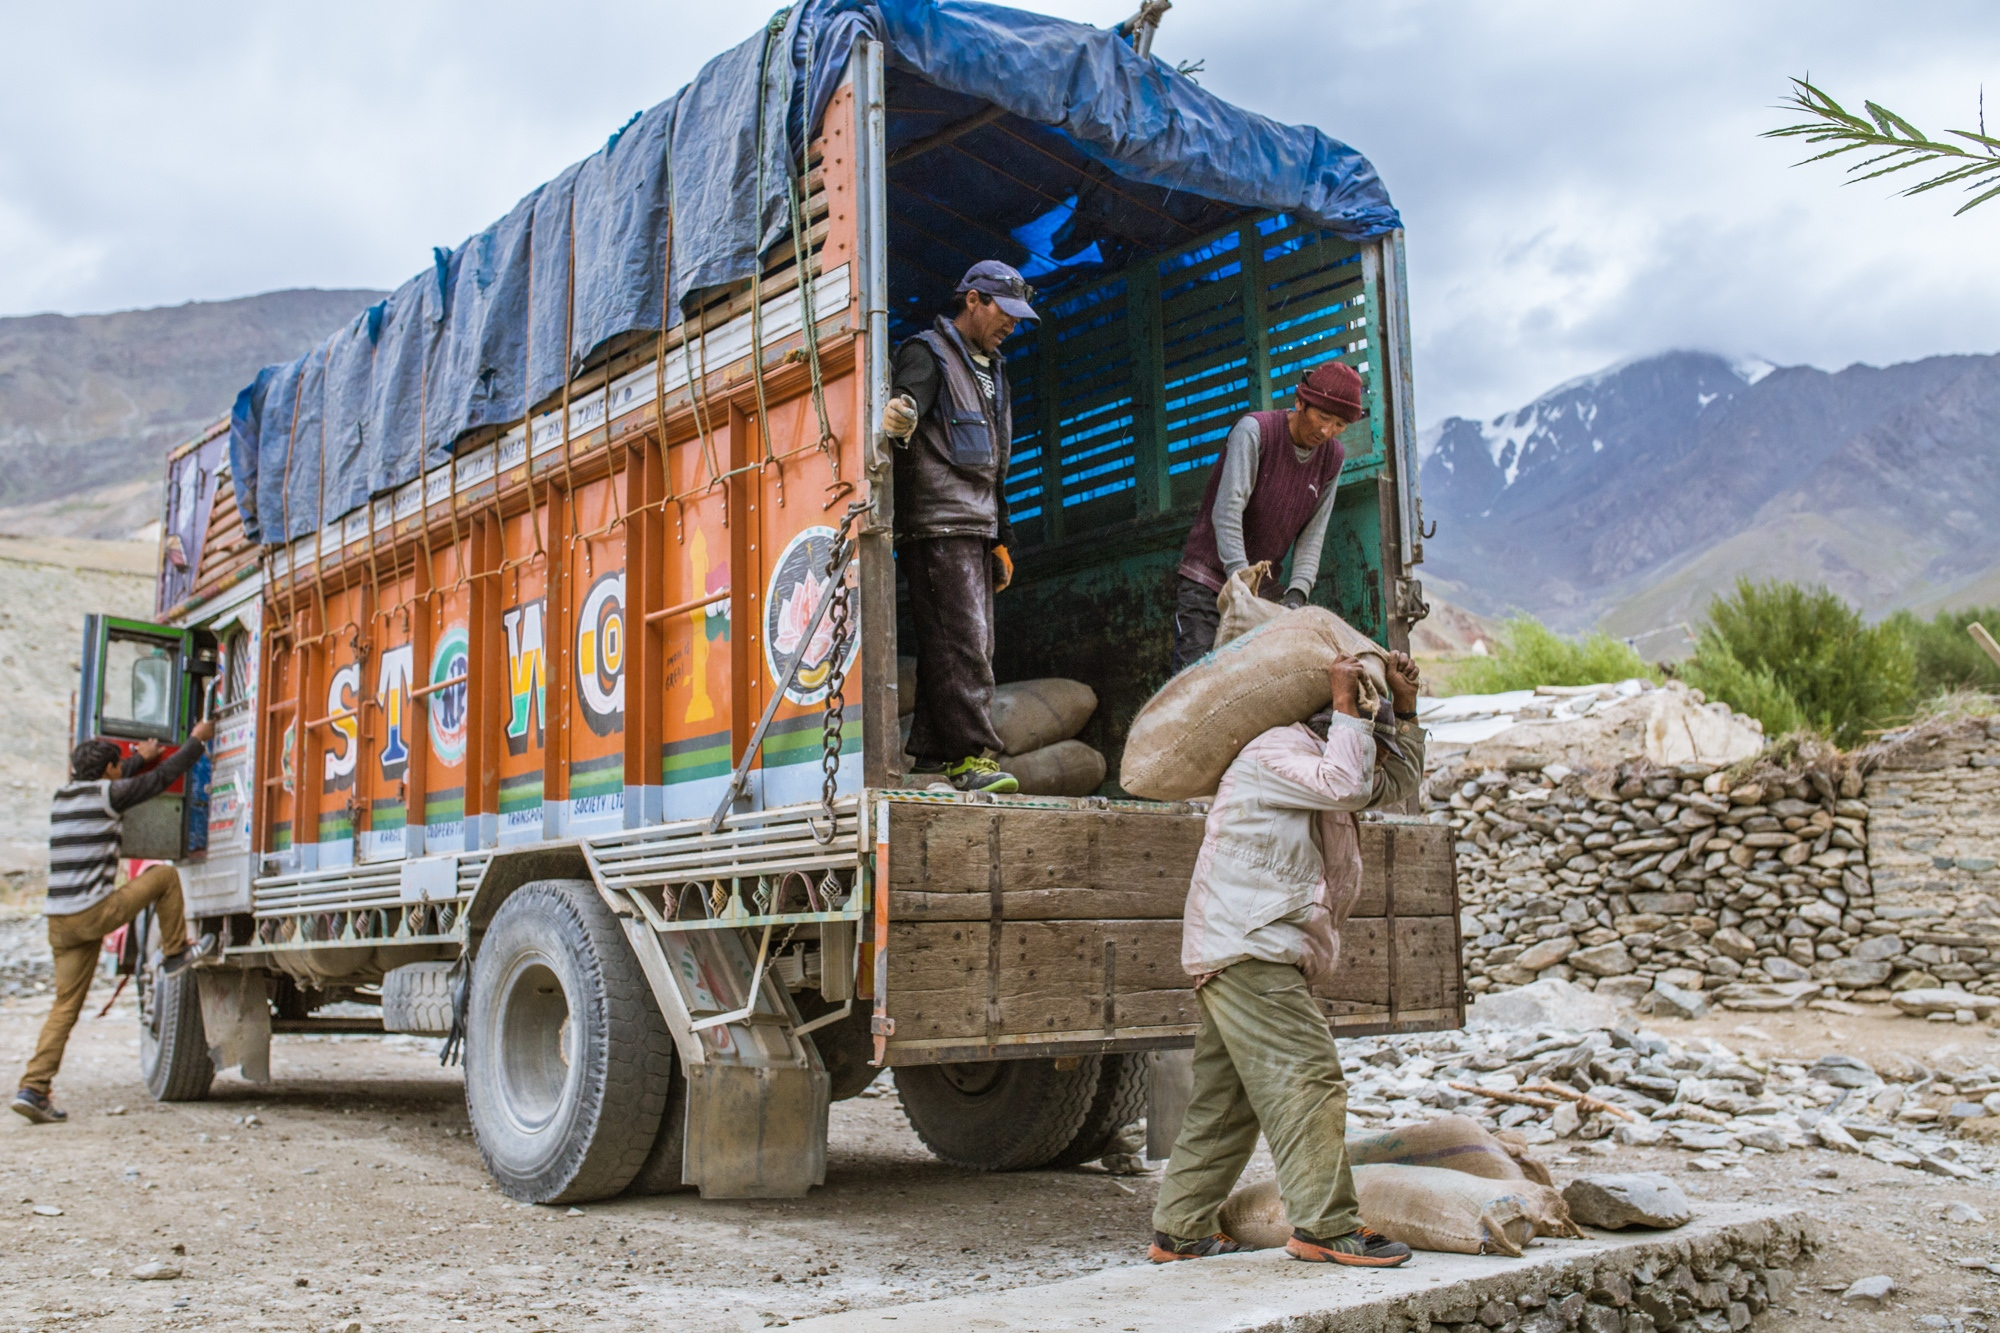 A man carries imported food to a storehouse in the water-stressed village of Kumik, India. As Kumik's glacier has fully retreated due to black carbon and climate change's warming impacts, the village is unable to produce enough crops because of water shortages. More food is now imported in diesel-powered trucks.